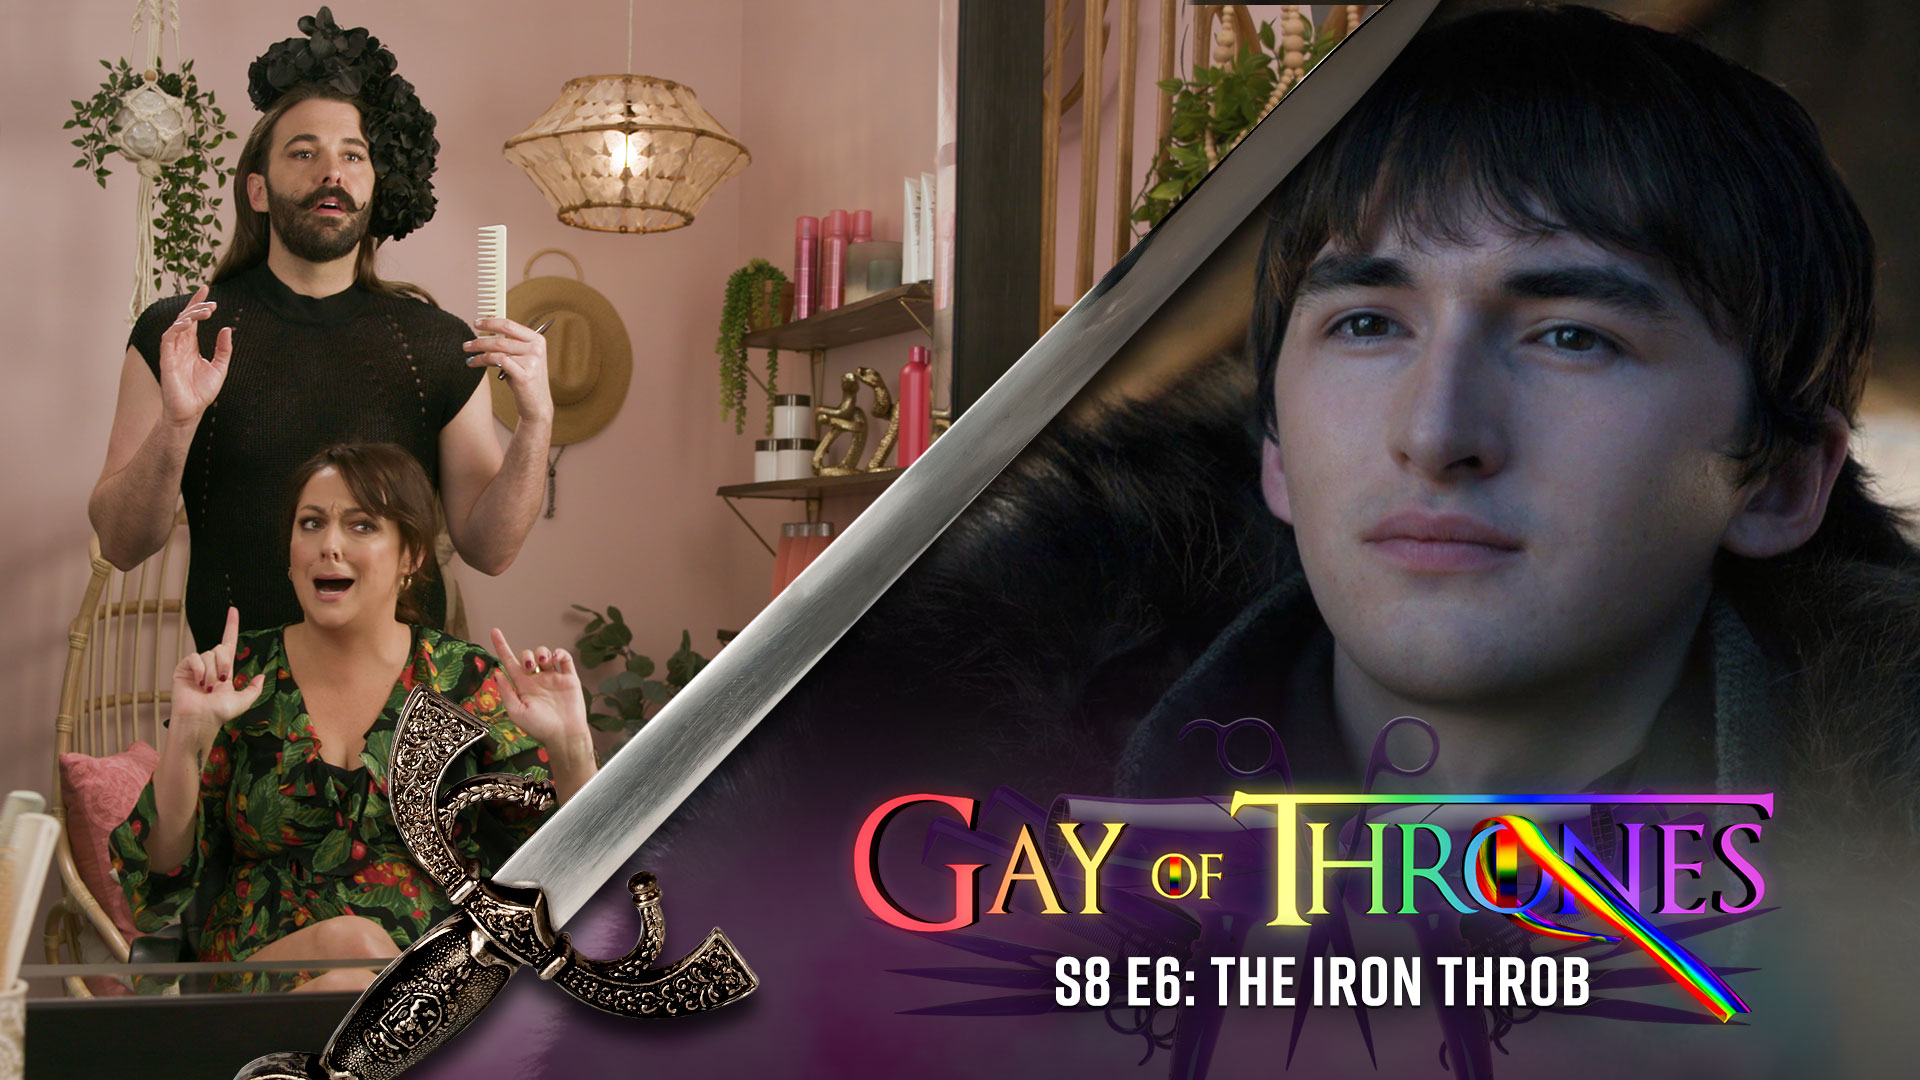 Gay of Thrones Profile and Activity - Funny Or Die